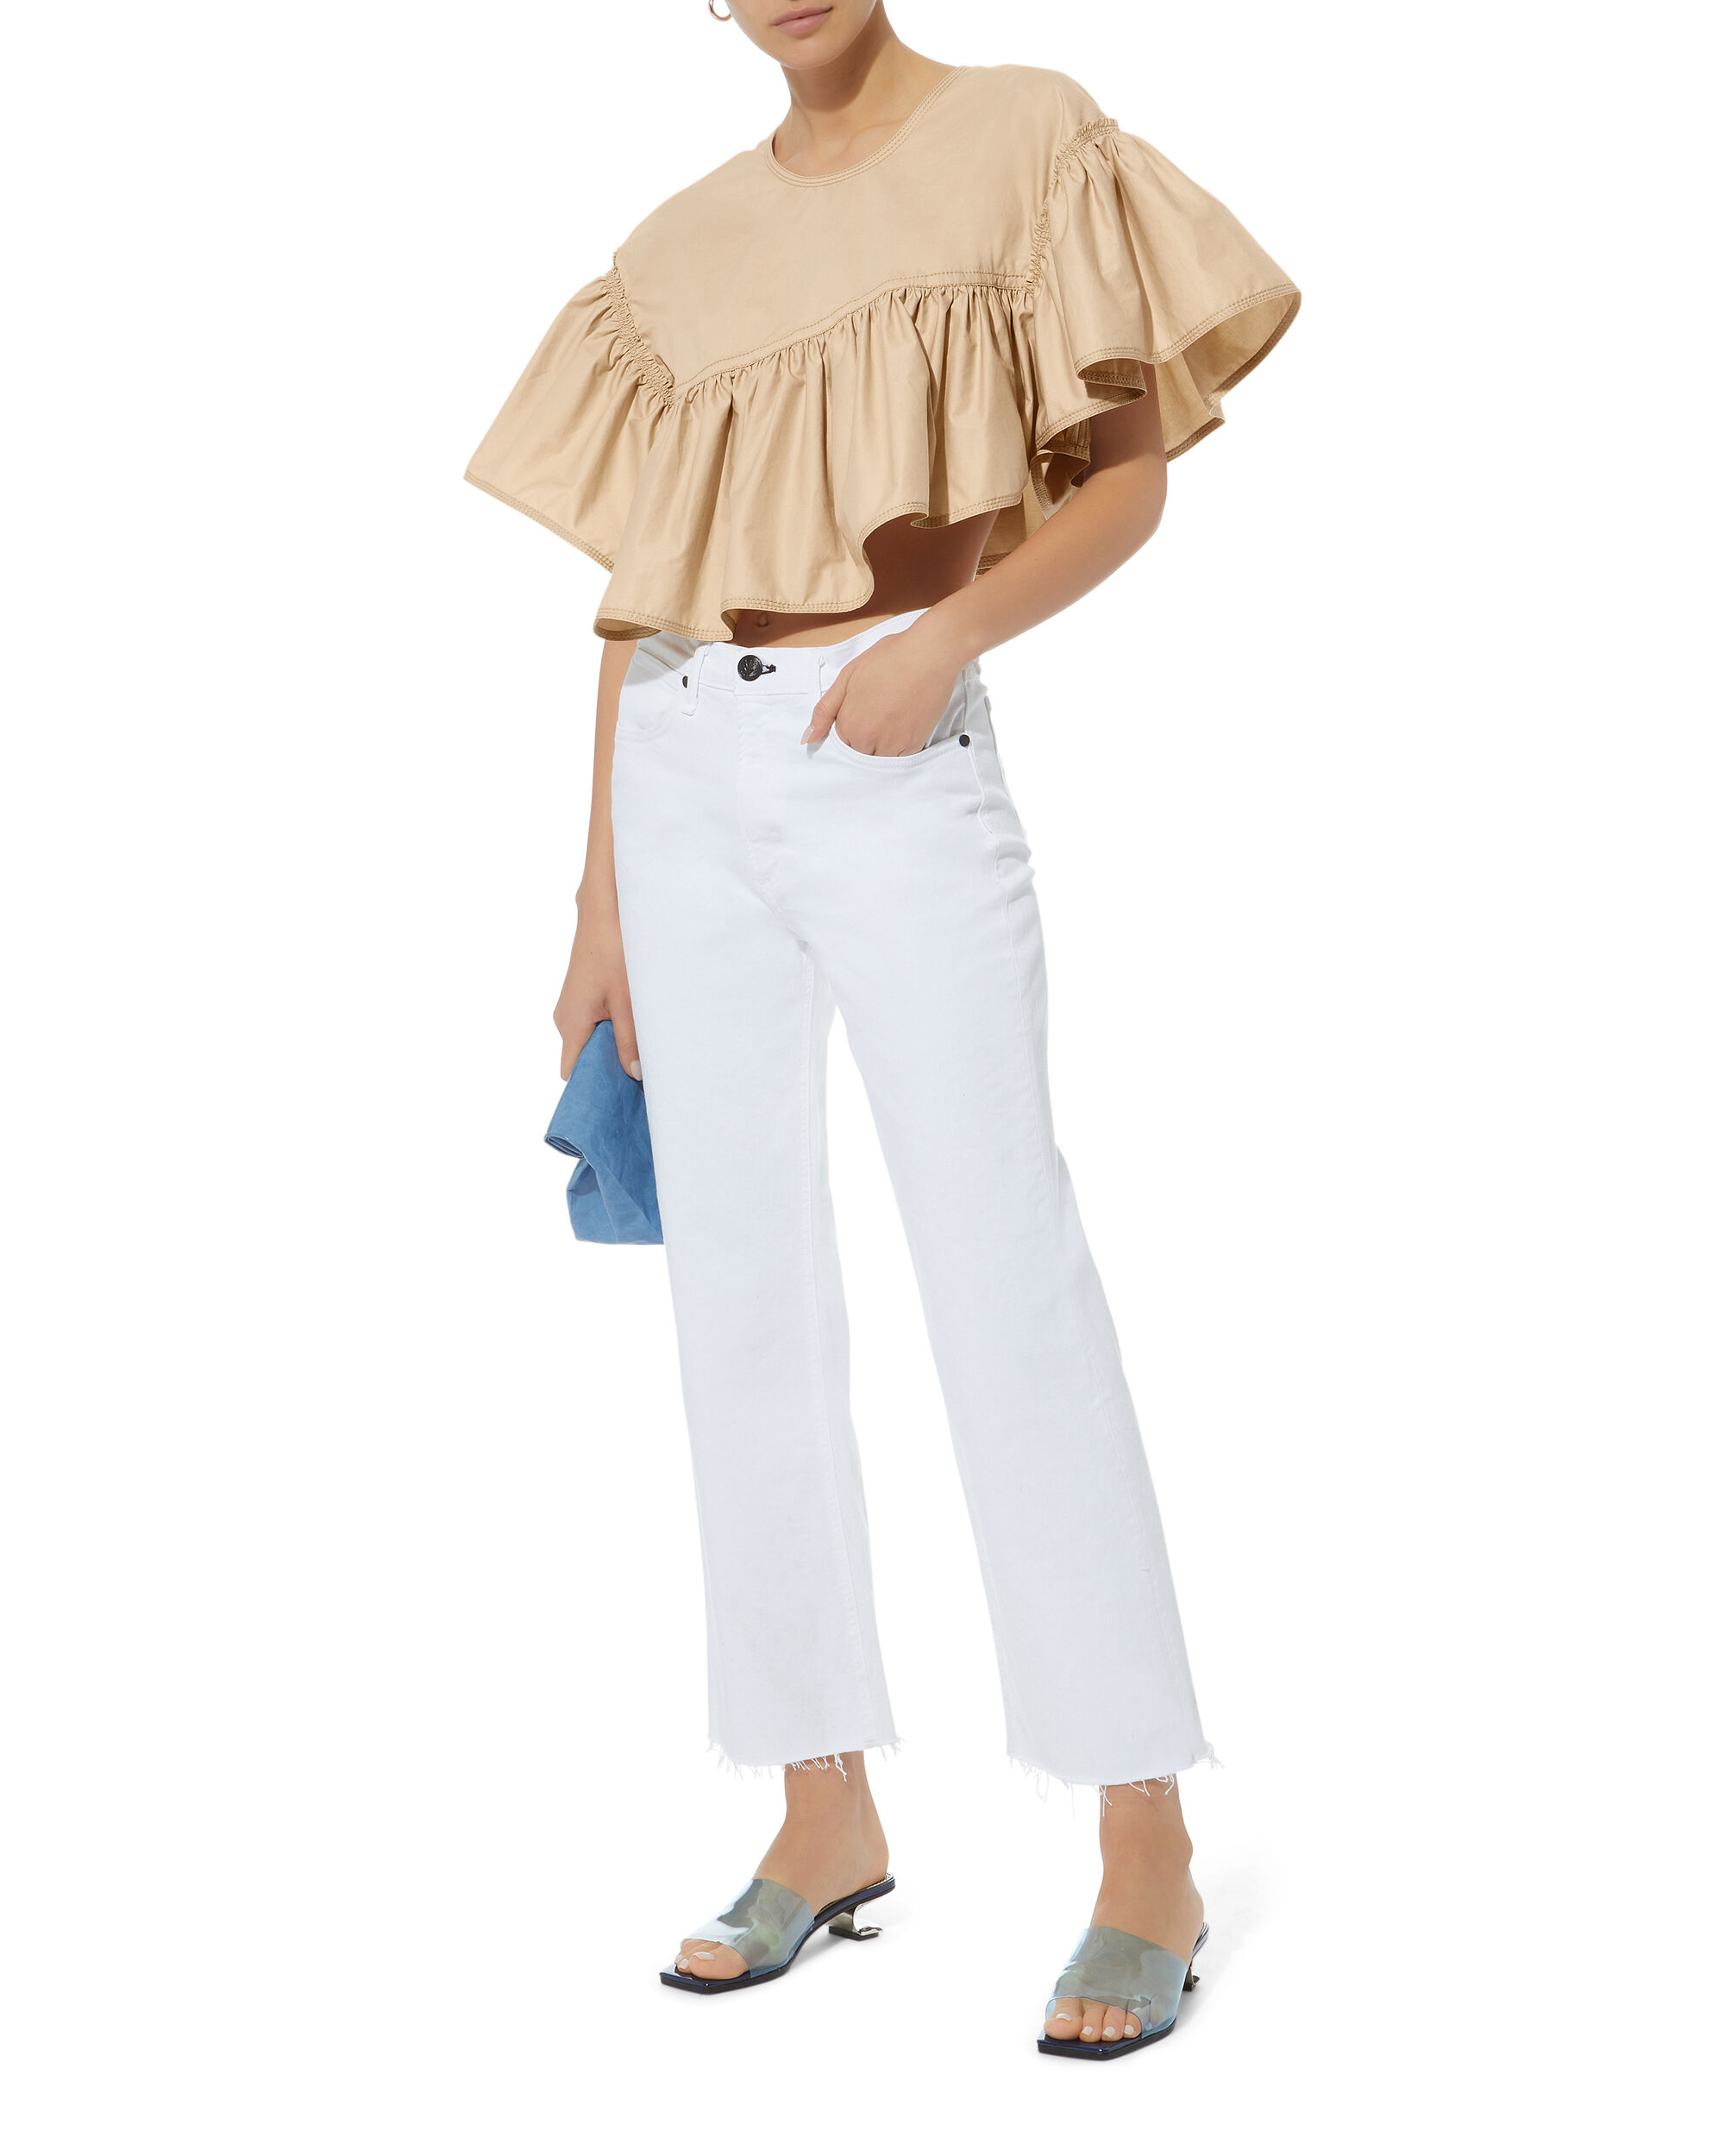 Flamenco Cropped Ruffle Top, BEIGE, hi-res